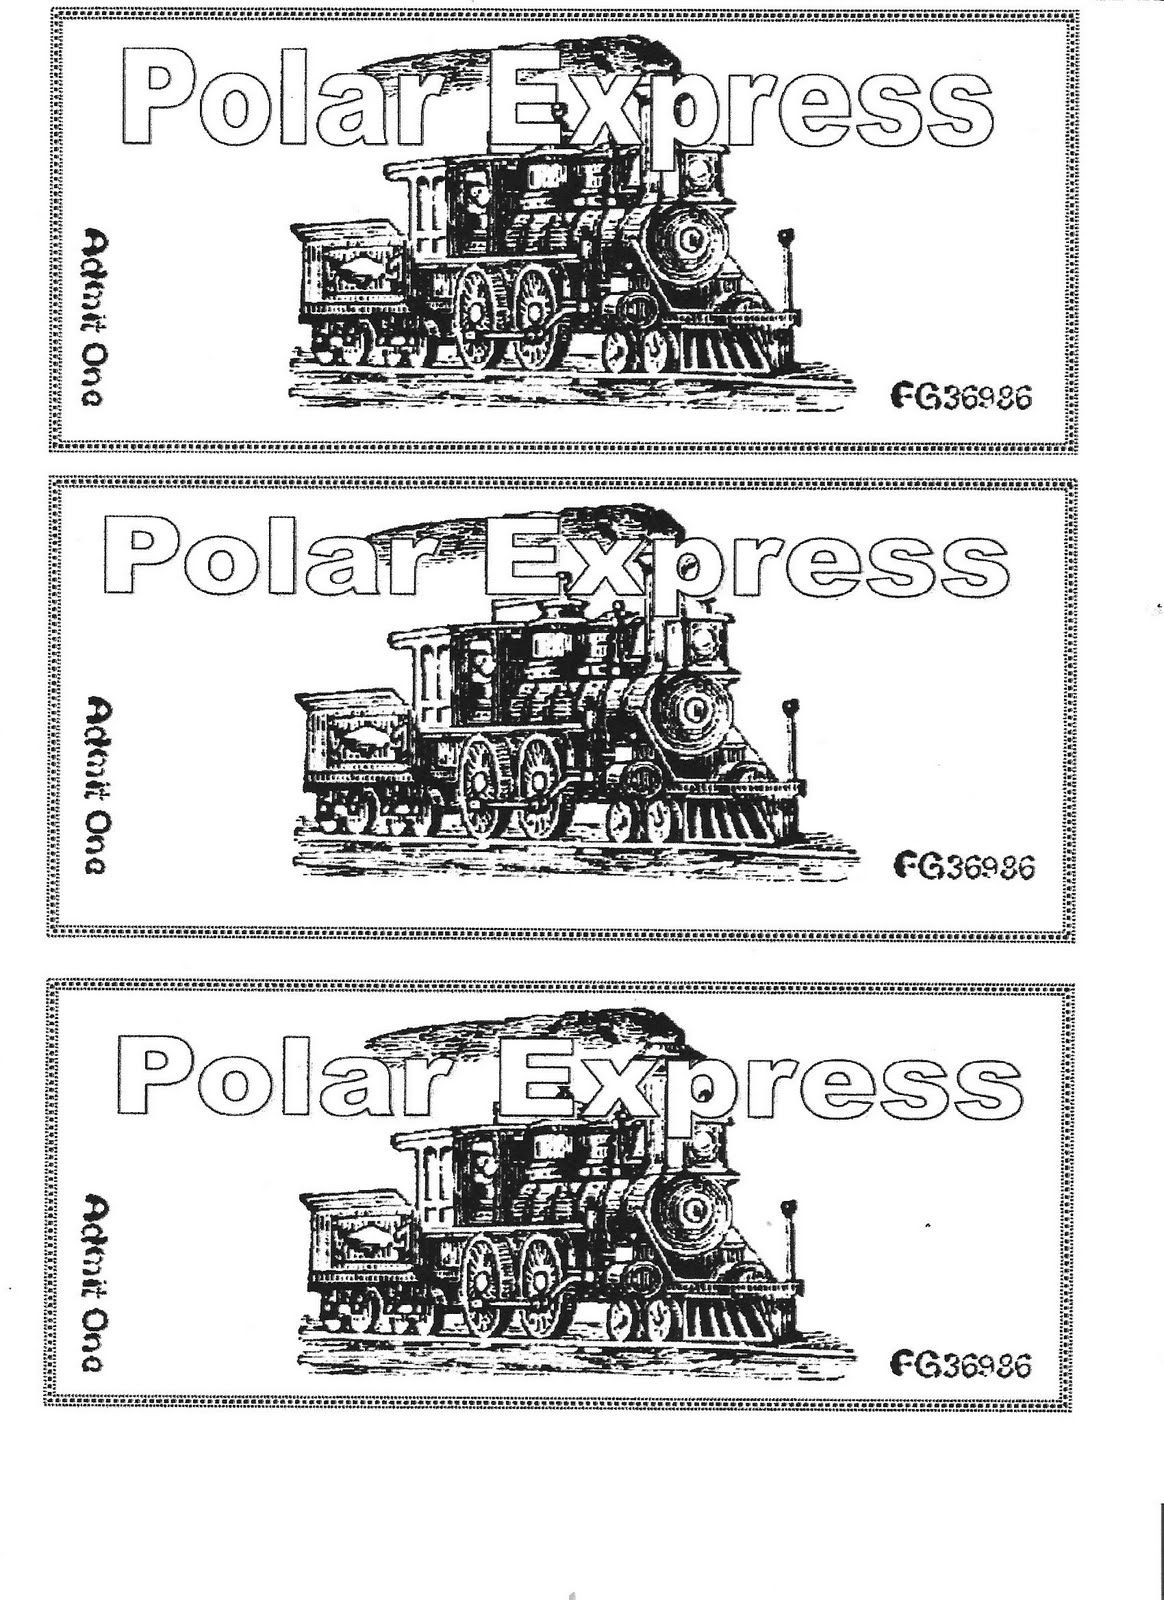 Polar Express Tickets back with Christmascolor cardstock have – Ticket Template for Pages